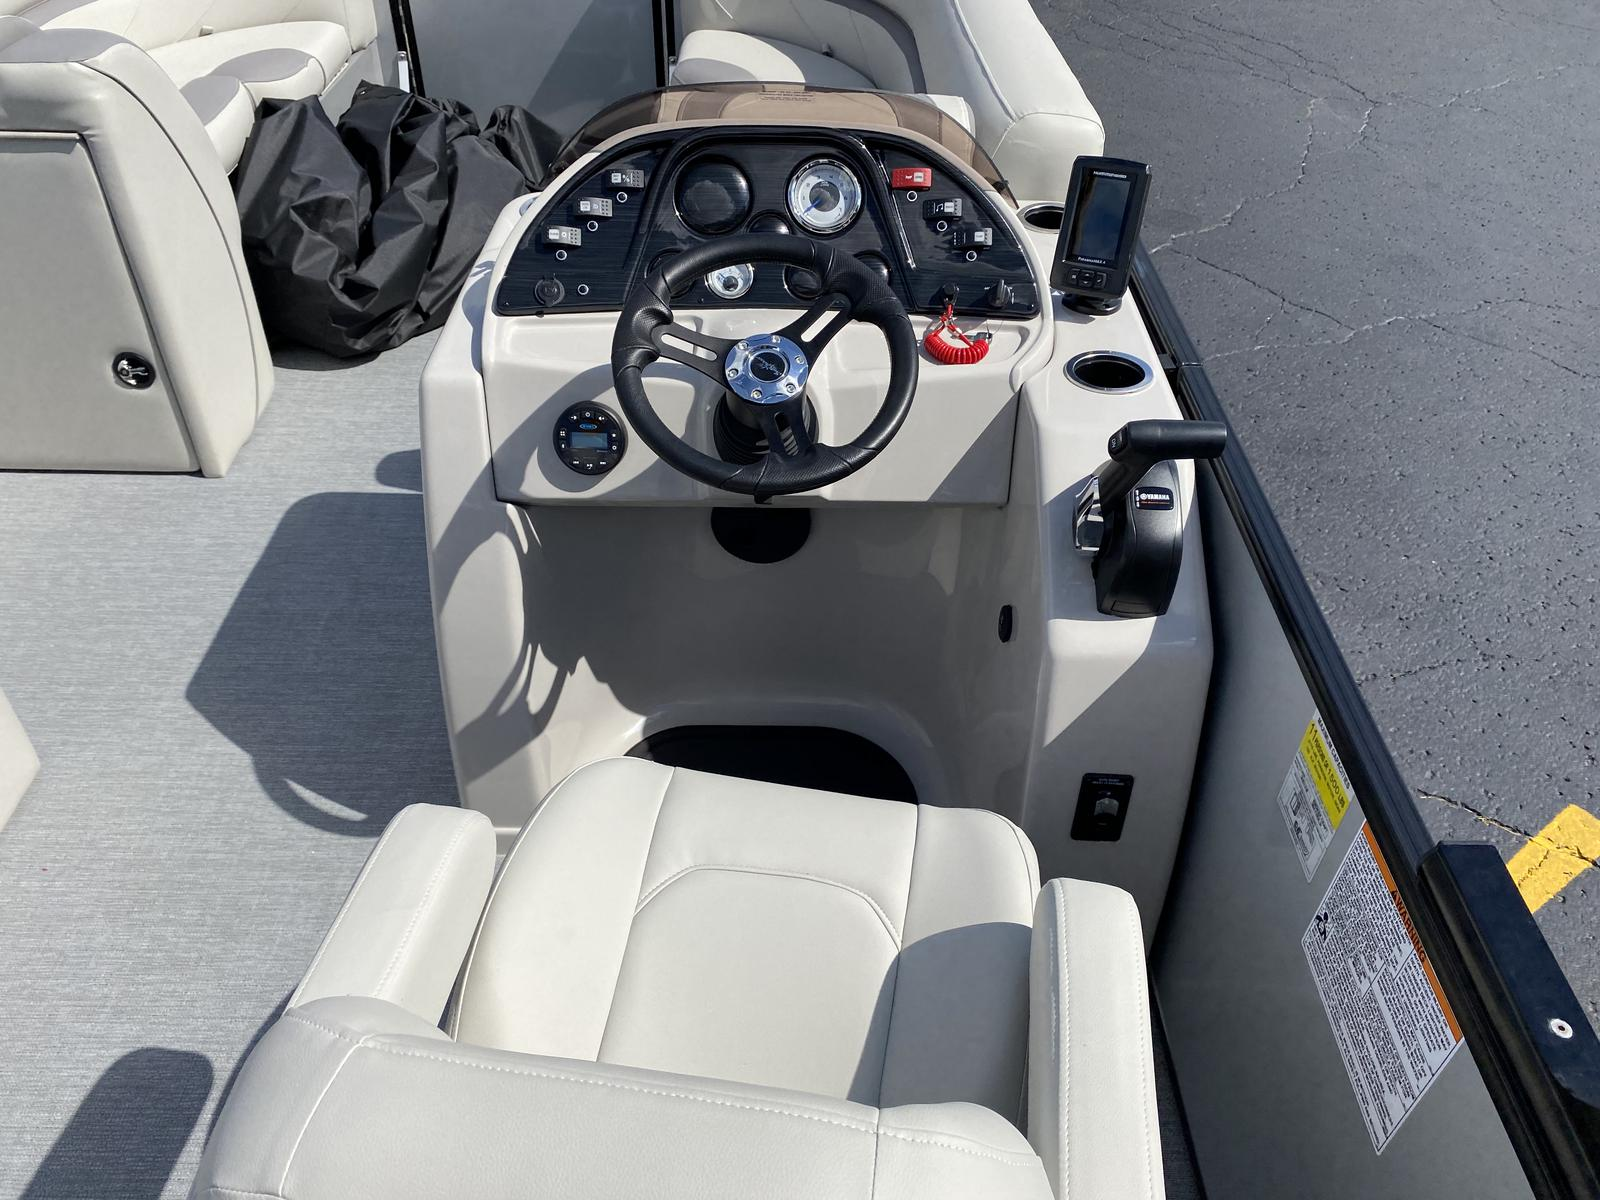 2020 SunChaser boat for sale, model of the boat is Geneva Cruise 22 SB & Image # 2 of 12